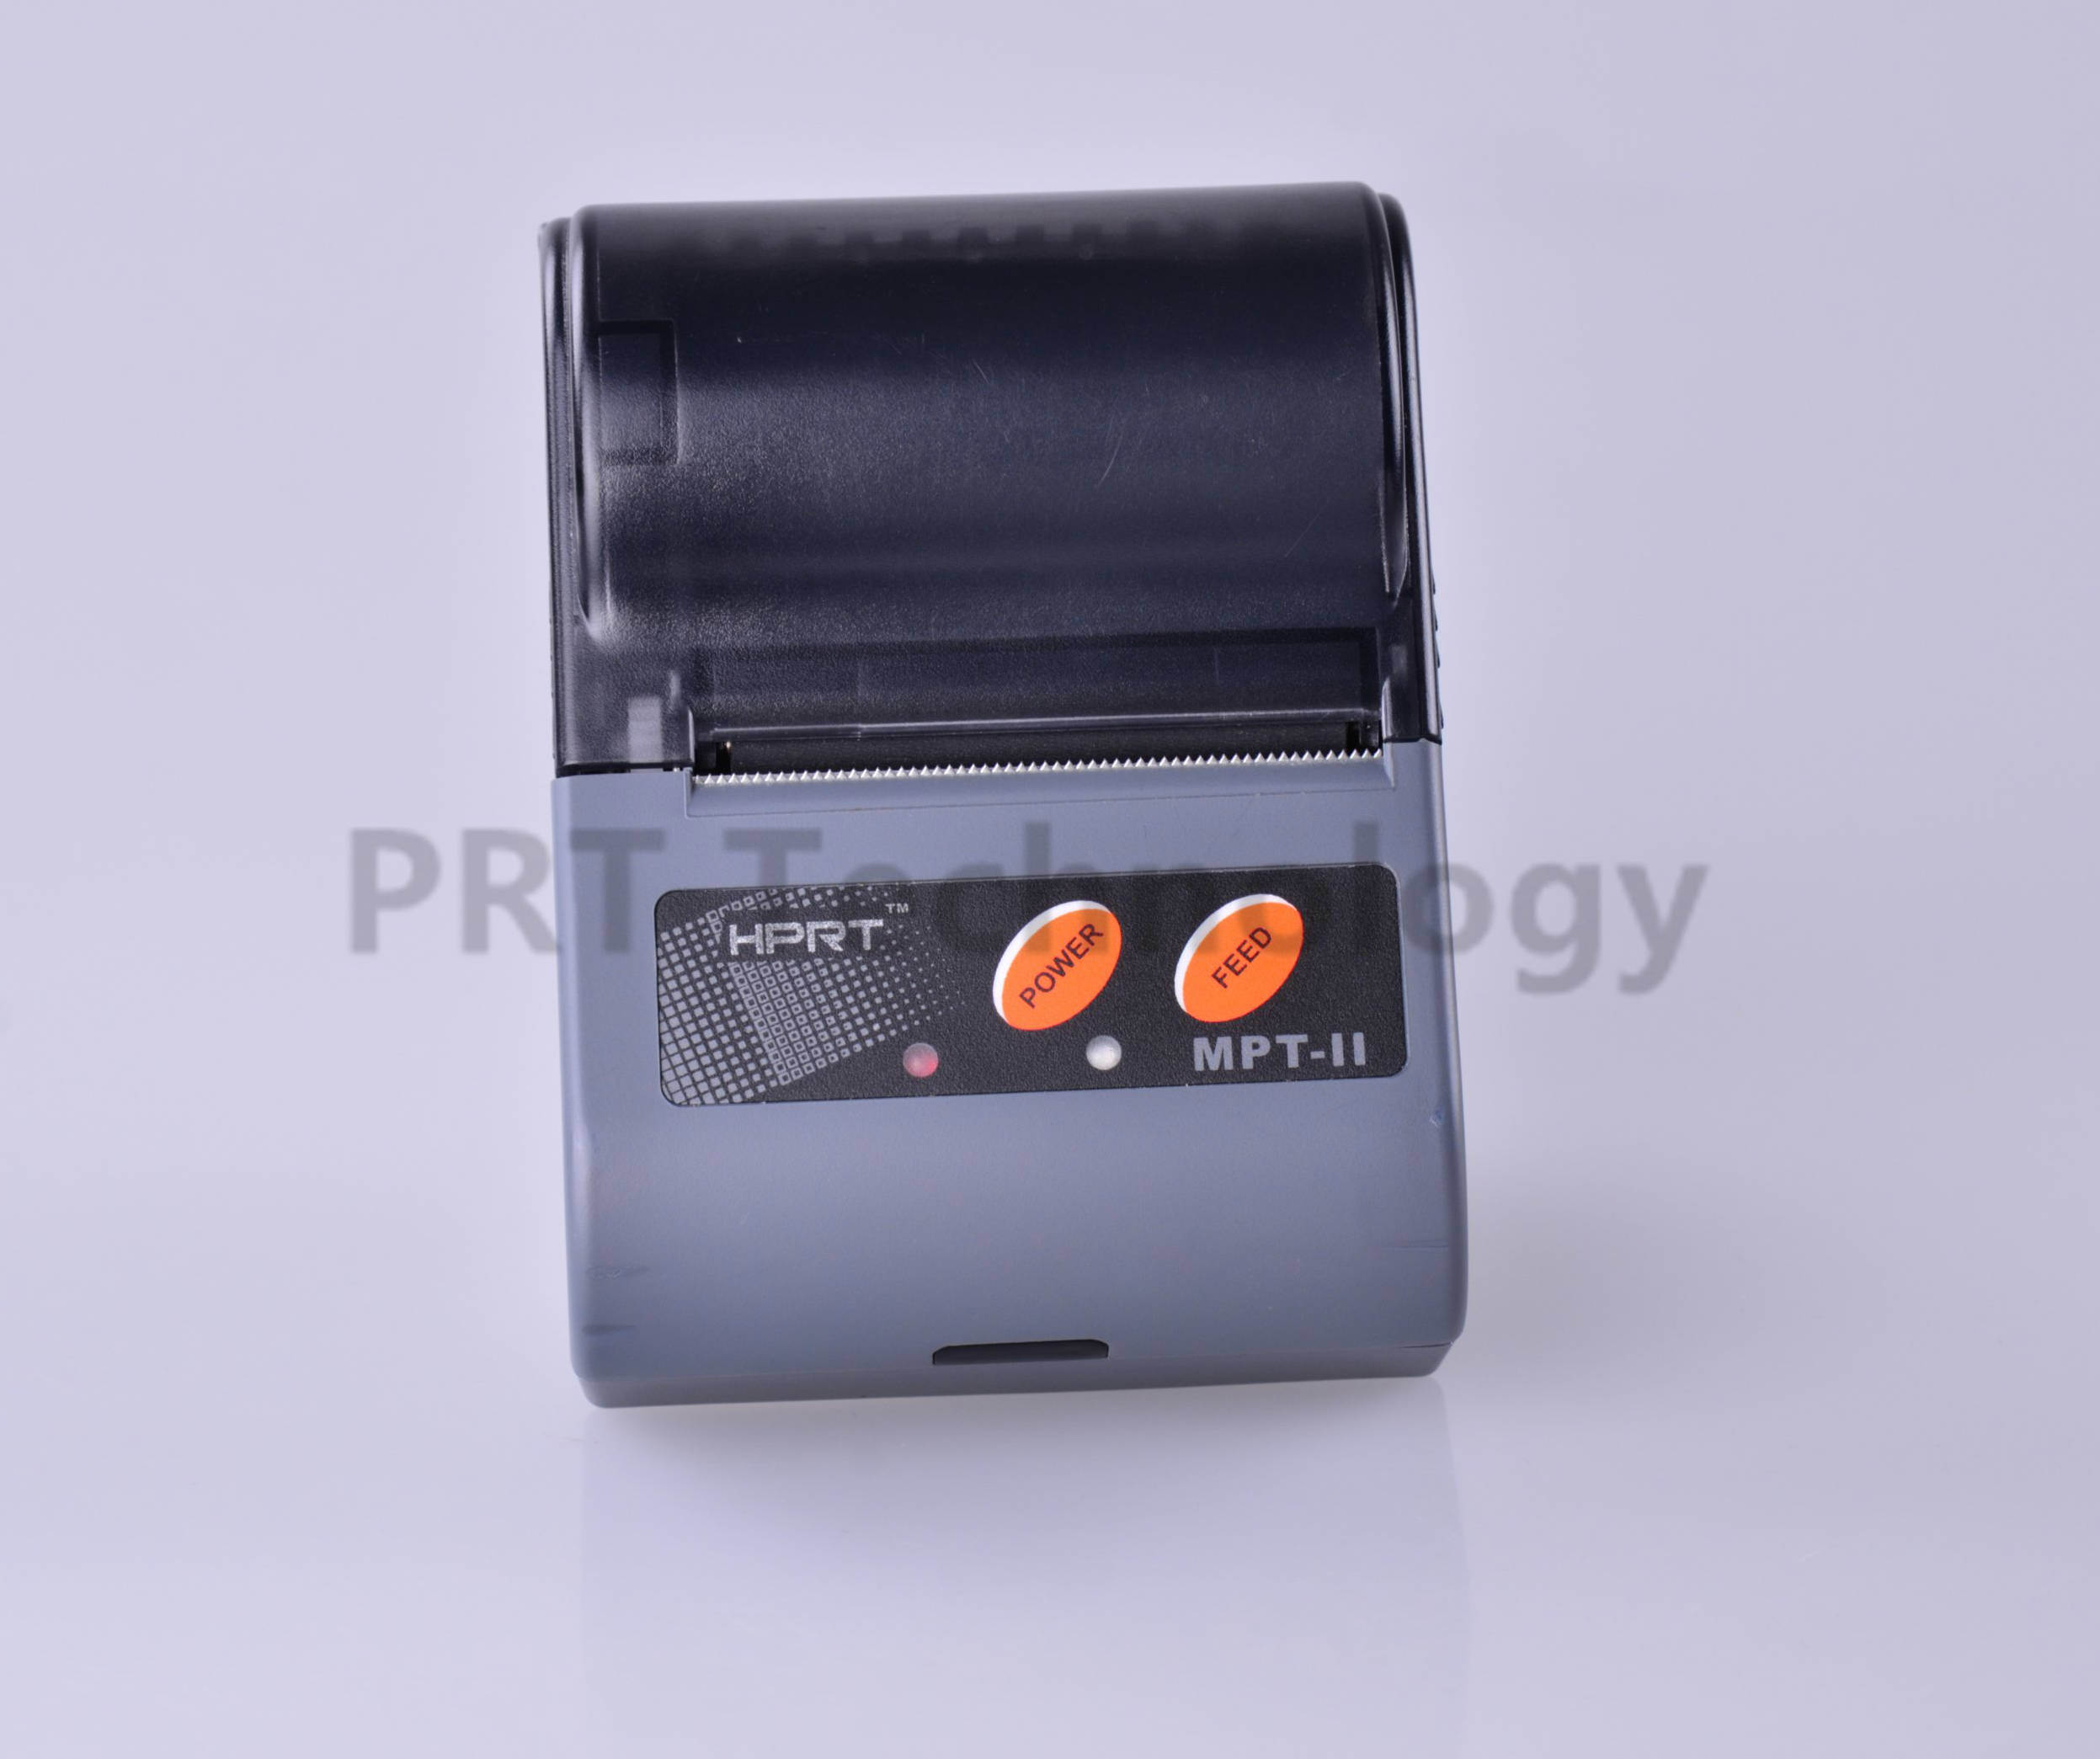 40mm Paper Roller 2 Inch Mobile Receipt Printer with Bluetooth (MPT-II)